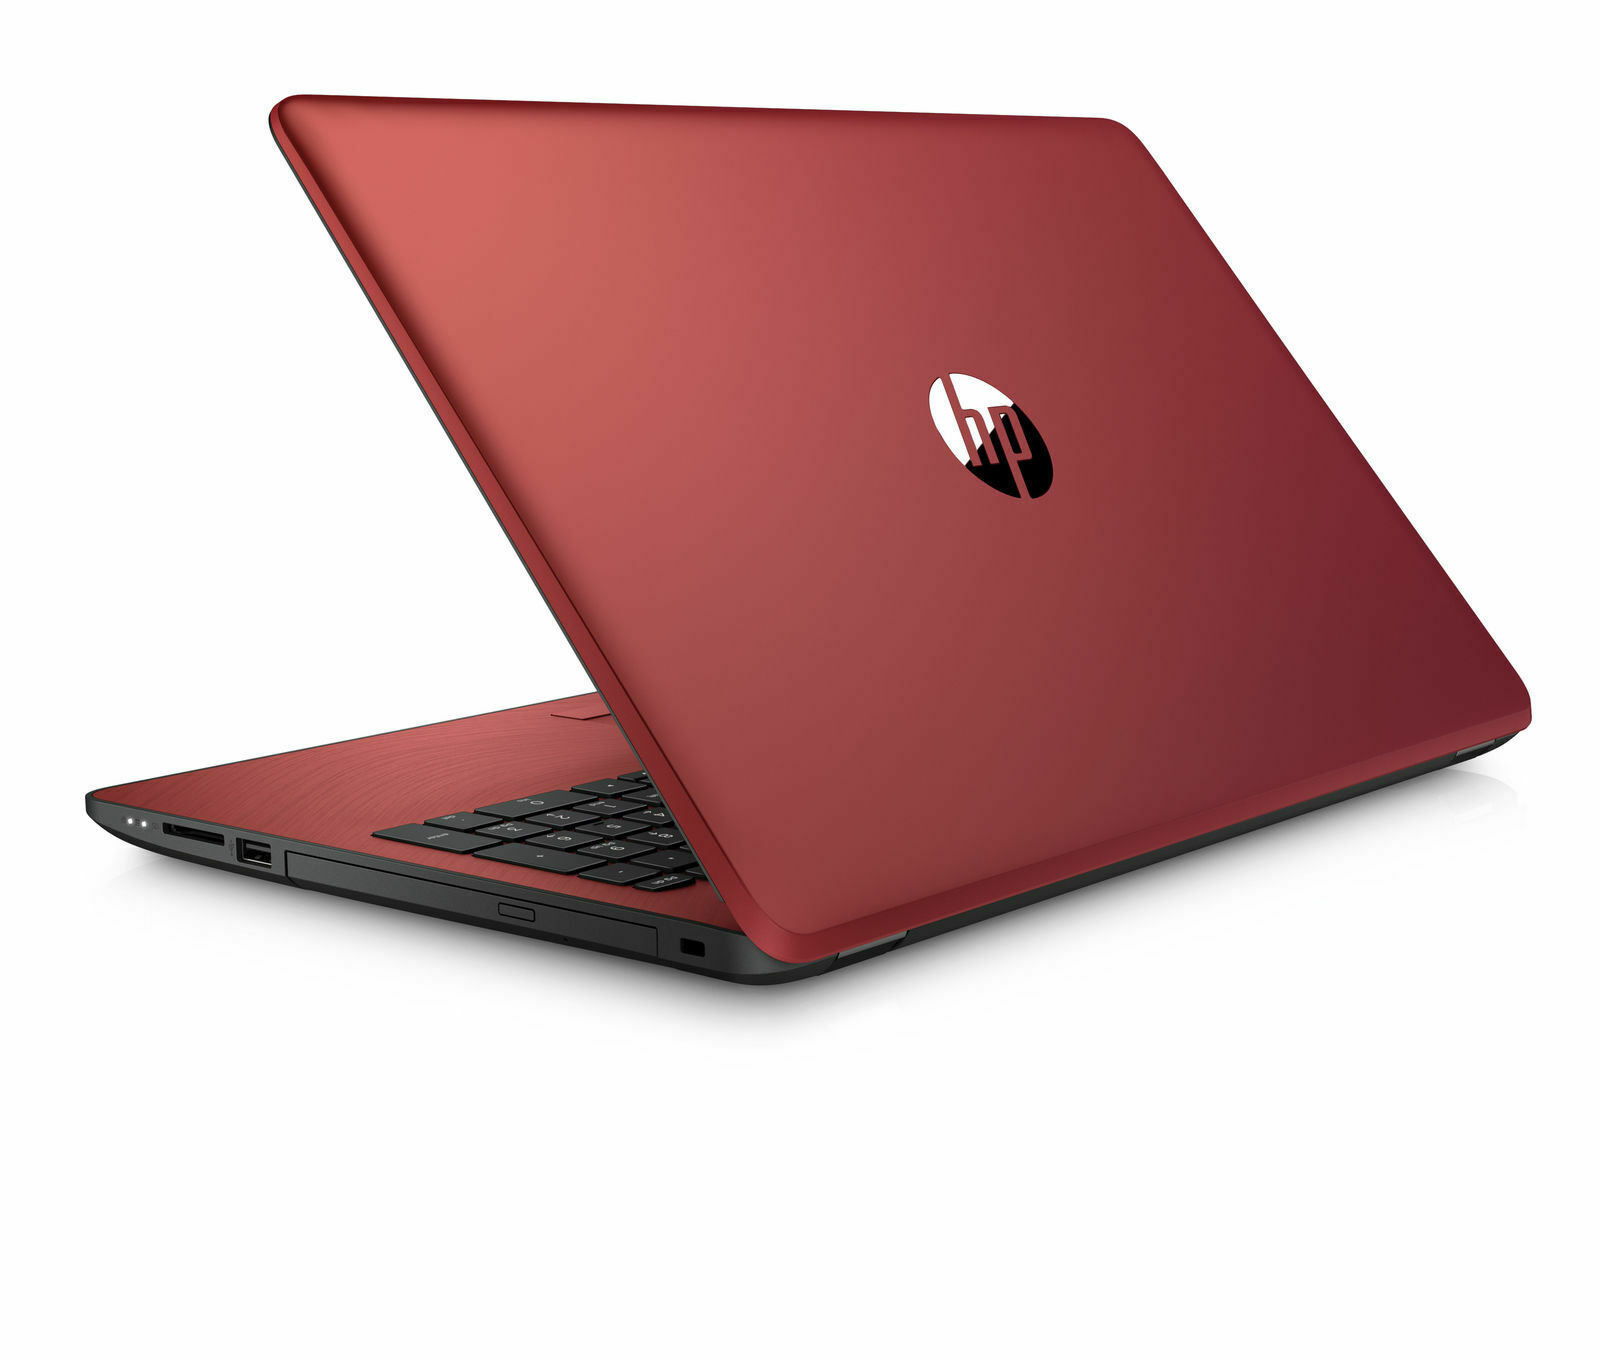 "Laptop Windows - HP 15.6"" Laptop Intel Quad 2.7GHz 500GB HDD DVD+RW Windows 10 - Red"